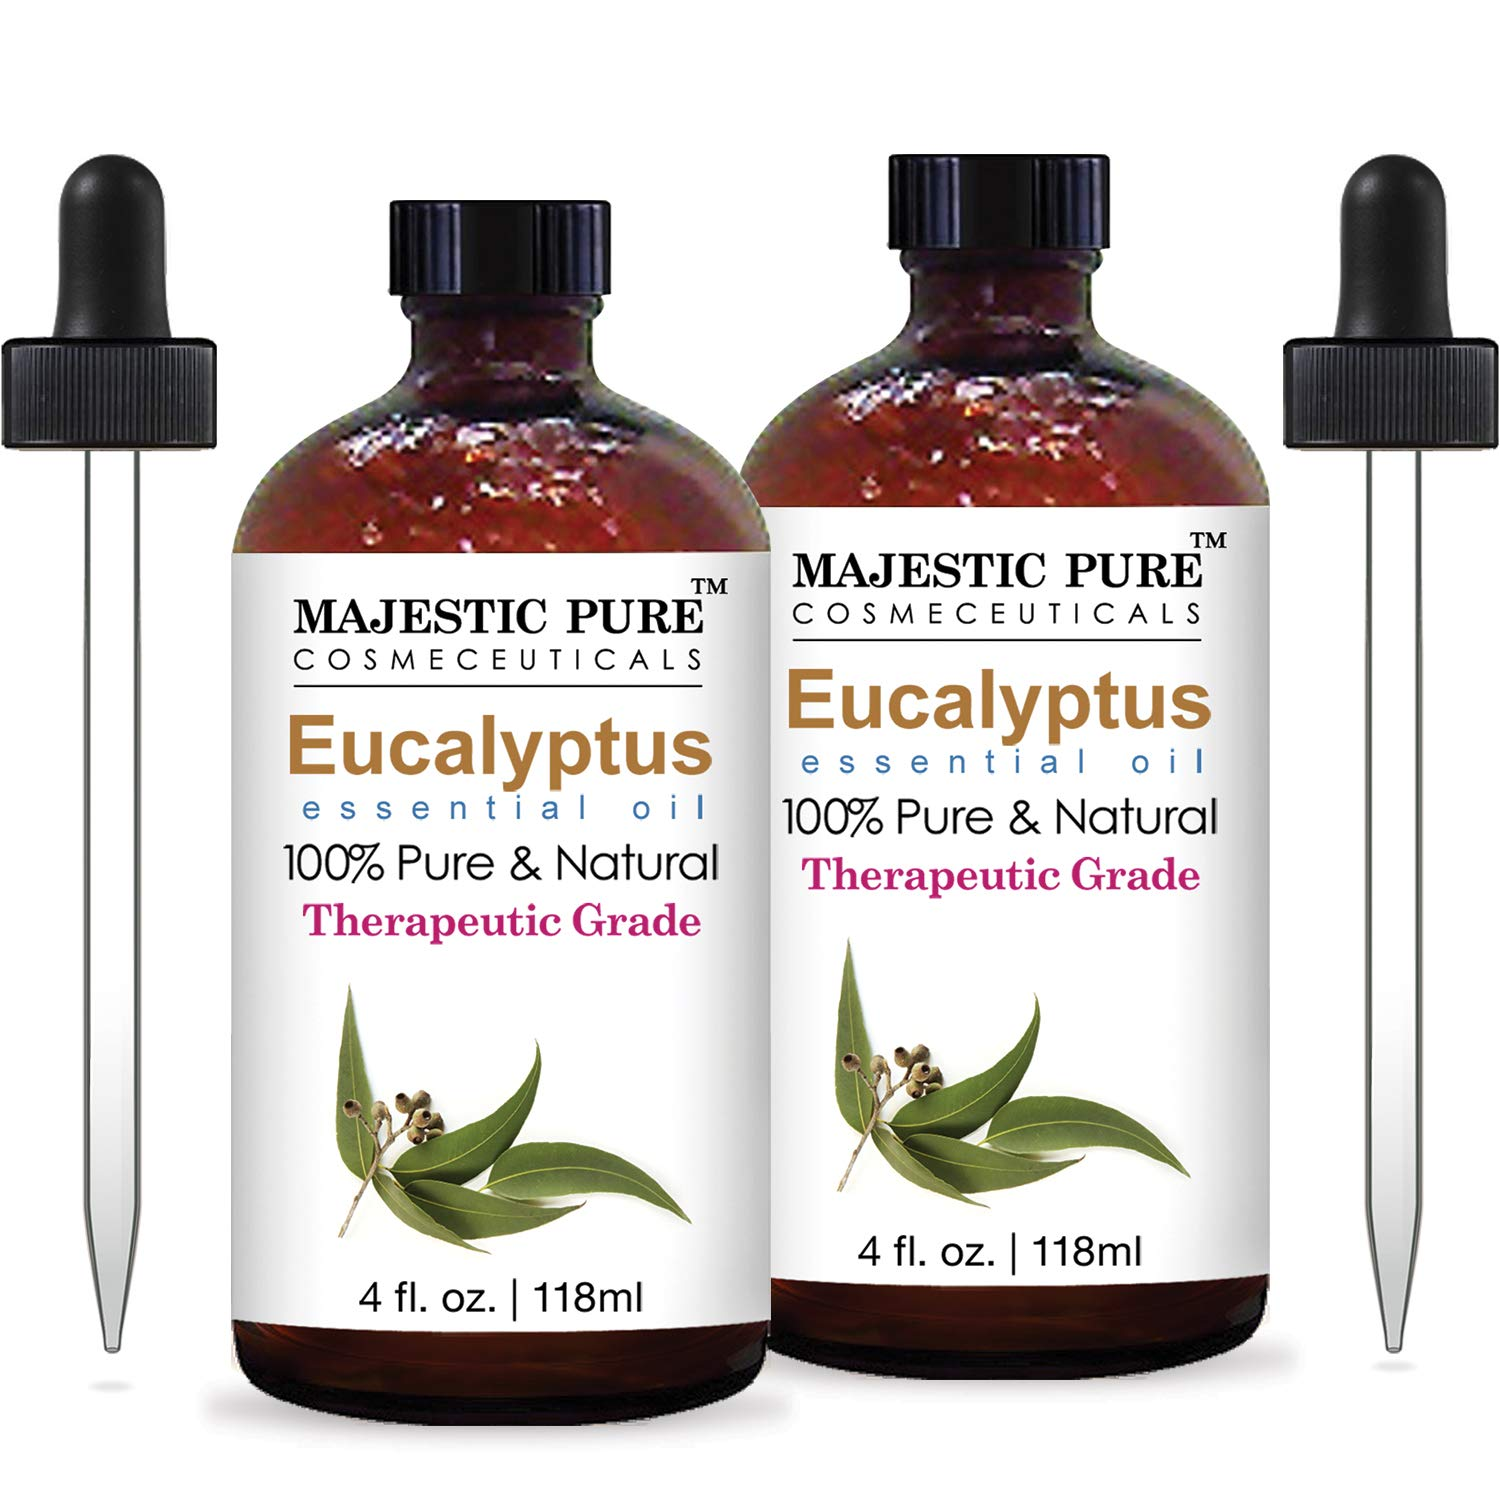 Majestic Pure Eucalyptus Essential Oil, Pure and Natural with Therapeutic Grade, Premium Quality Eucalyptus Oil, Set of 2, 4 Oz by Majestic Pure